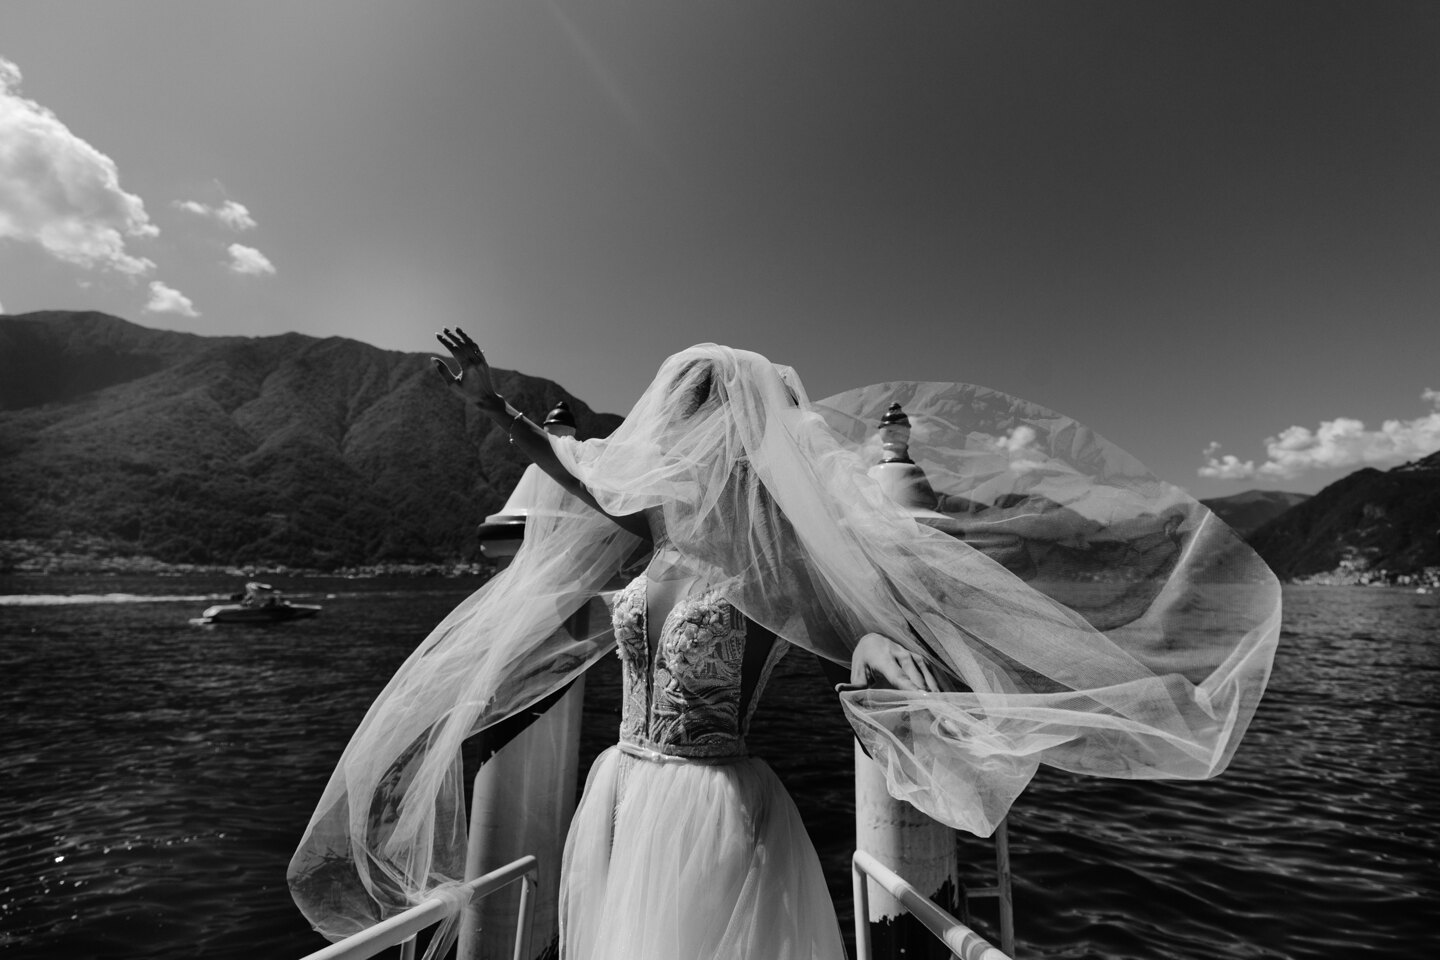 Wedding Photographer in Milan: Bride in a white dress on a lake